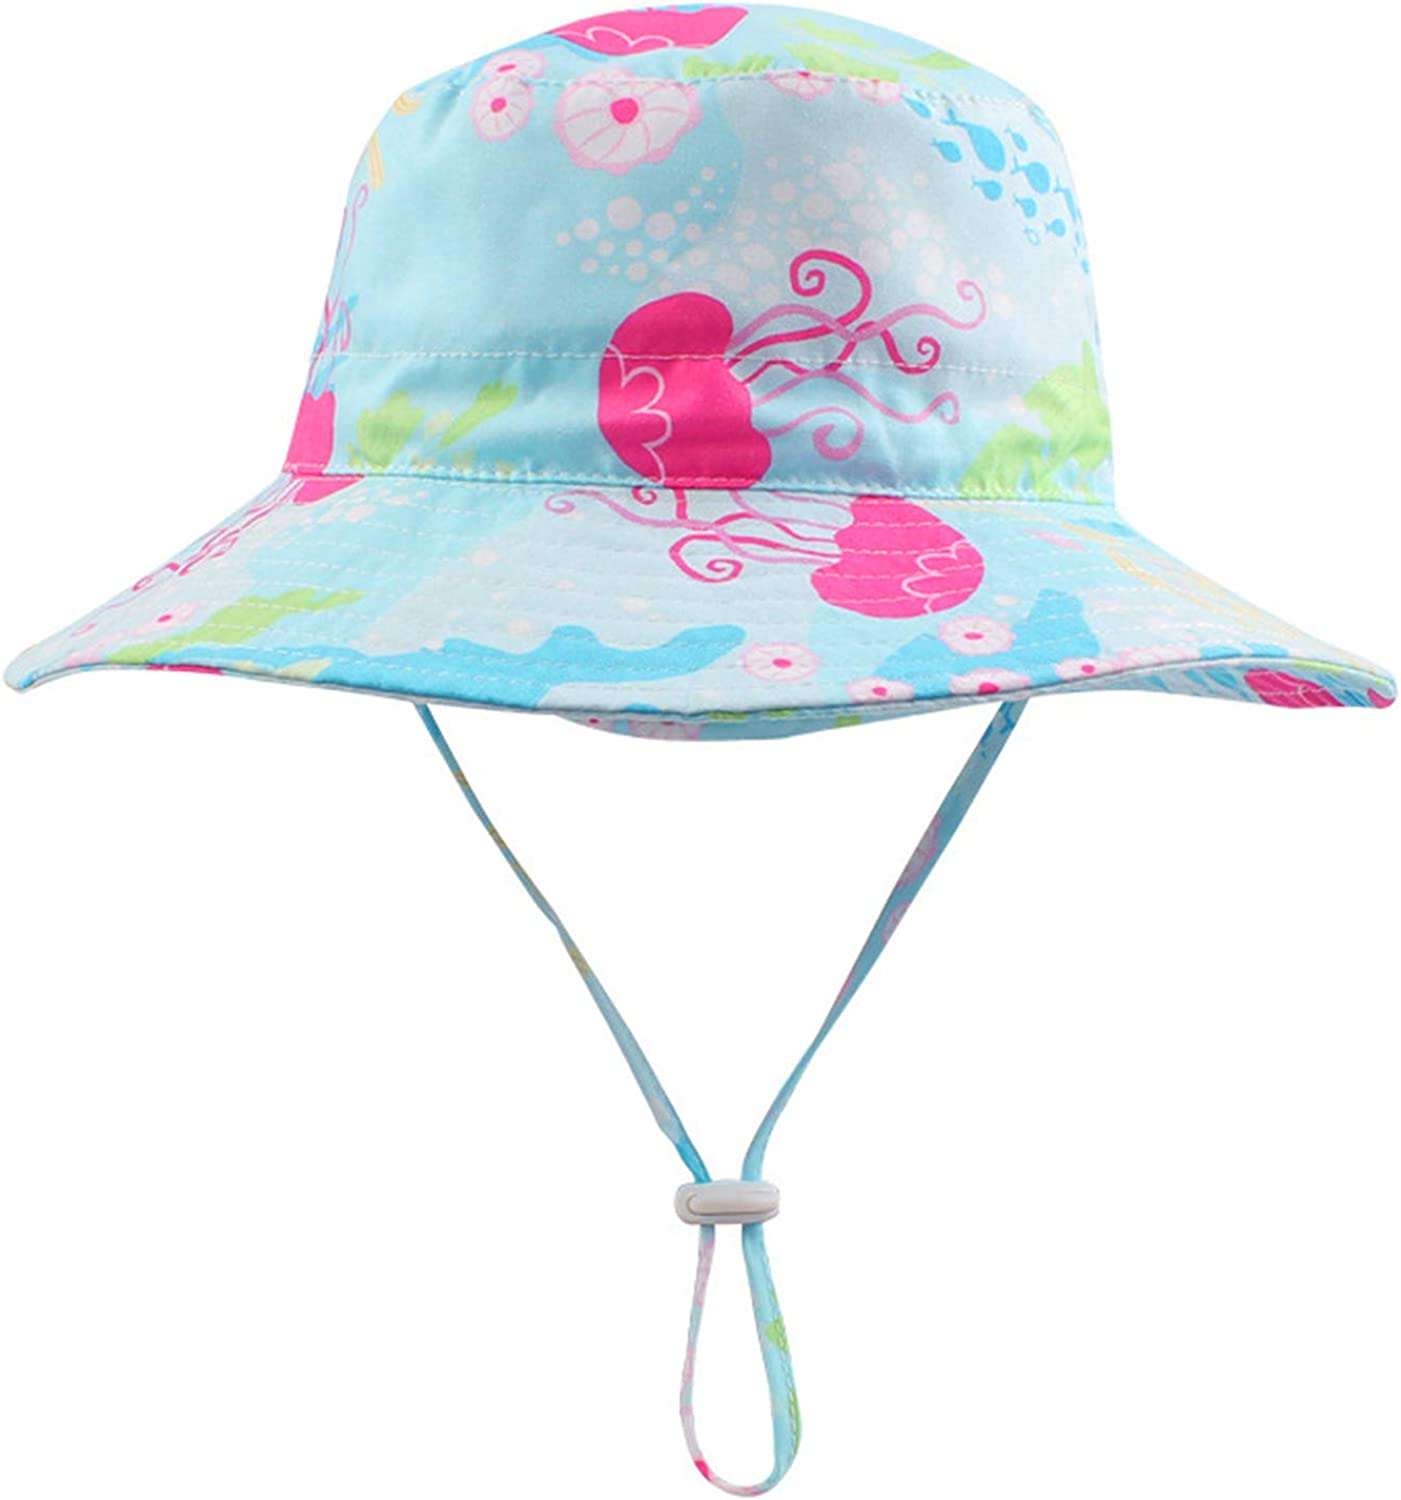 Product Baby Sun Hat Toddler Summer Boy UPF Protection Beac NEW before selling 50+